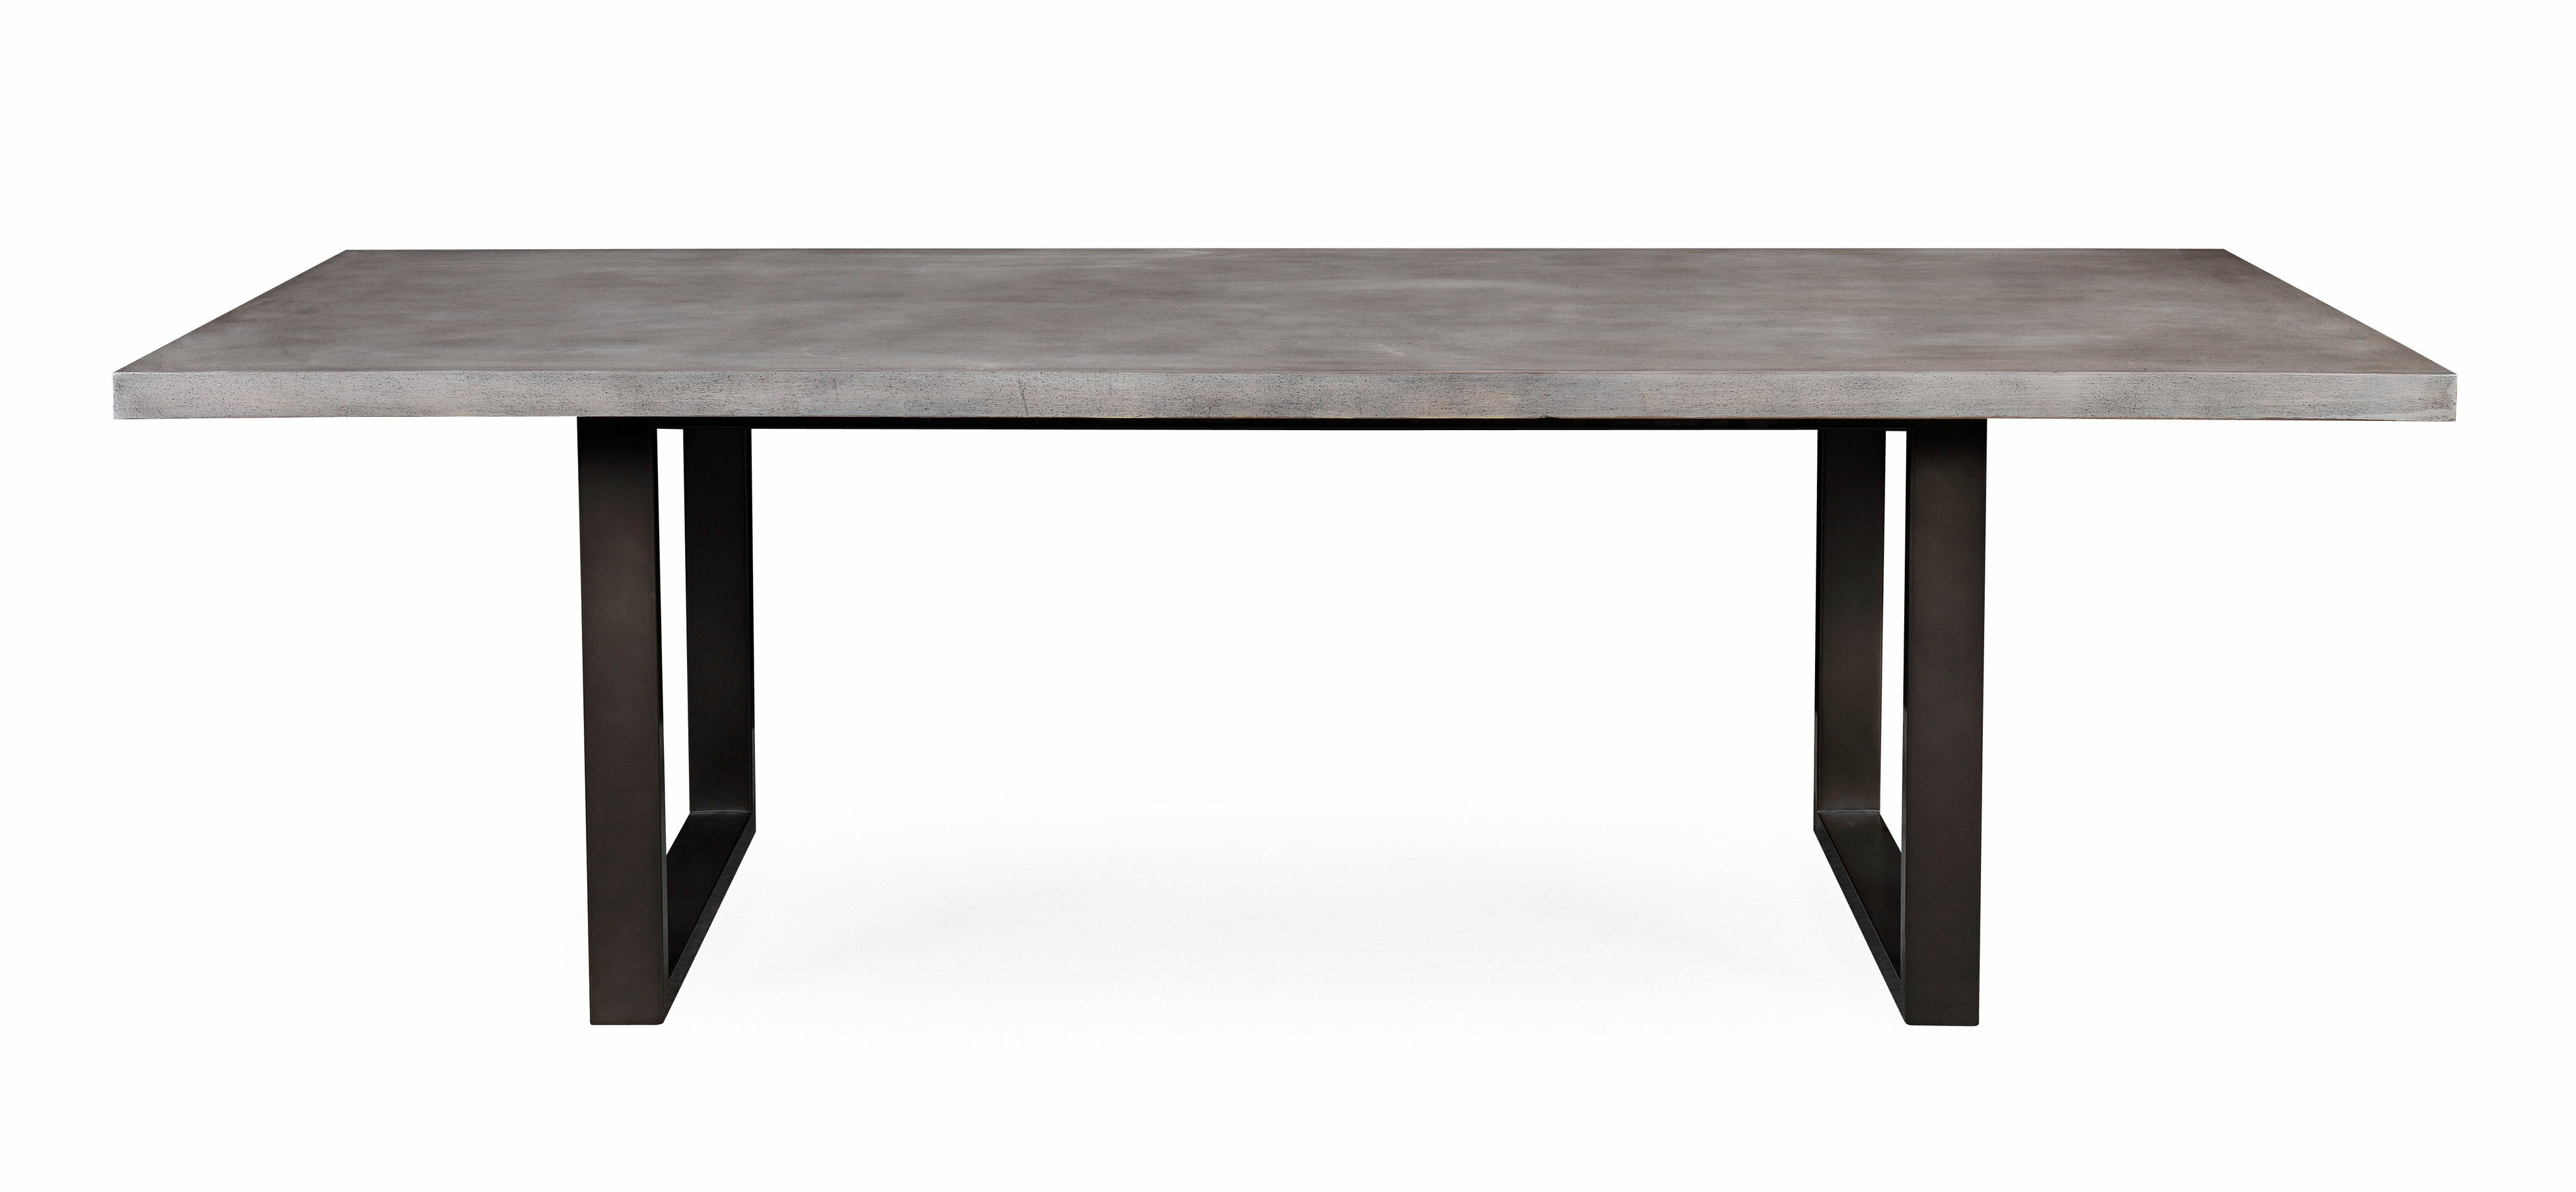 Carnarvon Concrete Dining Table Reviews AllModern - Faux concrete outdoor dining table